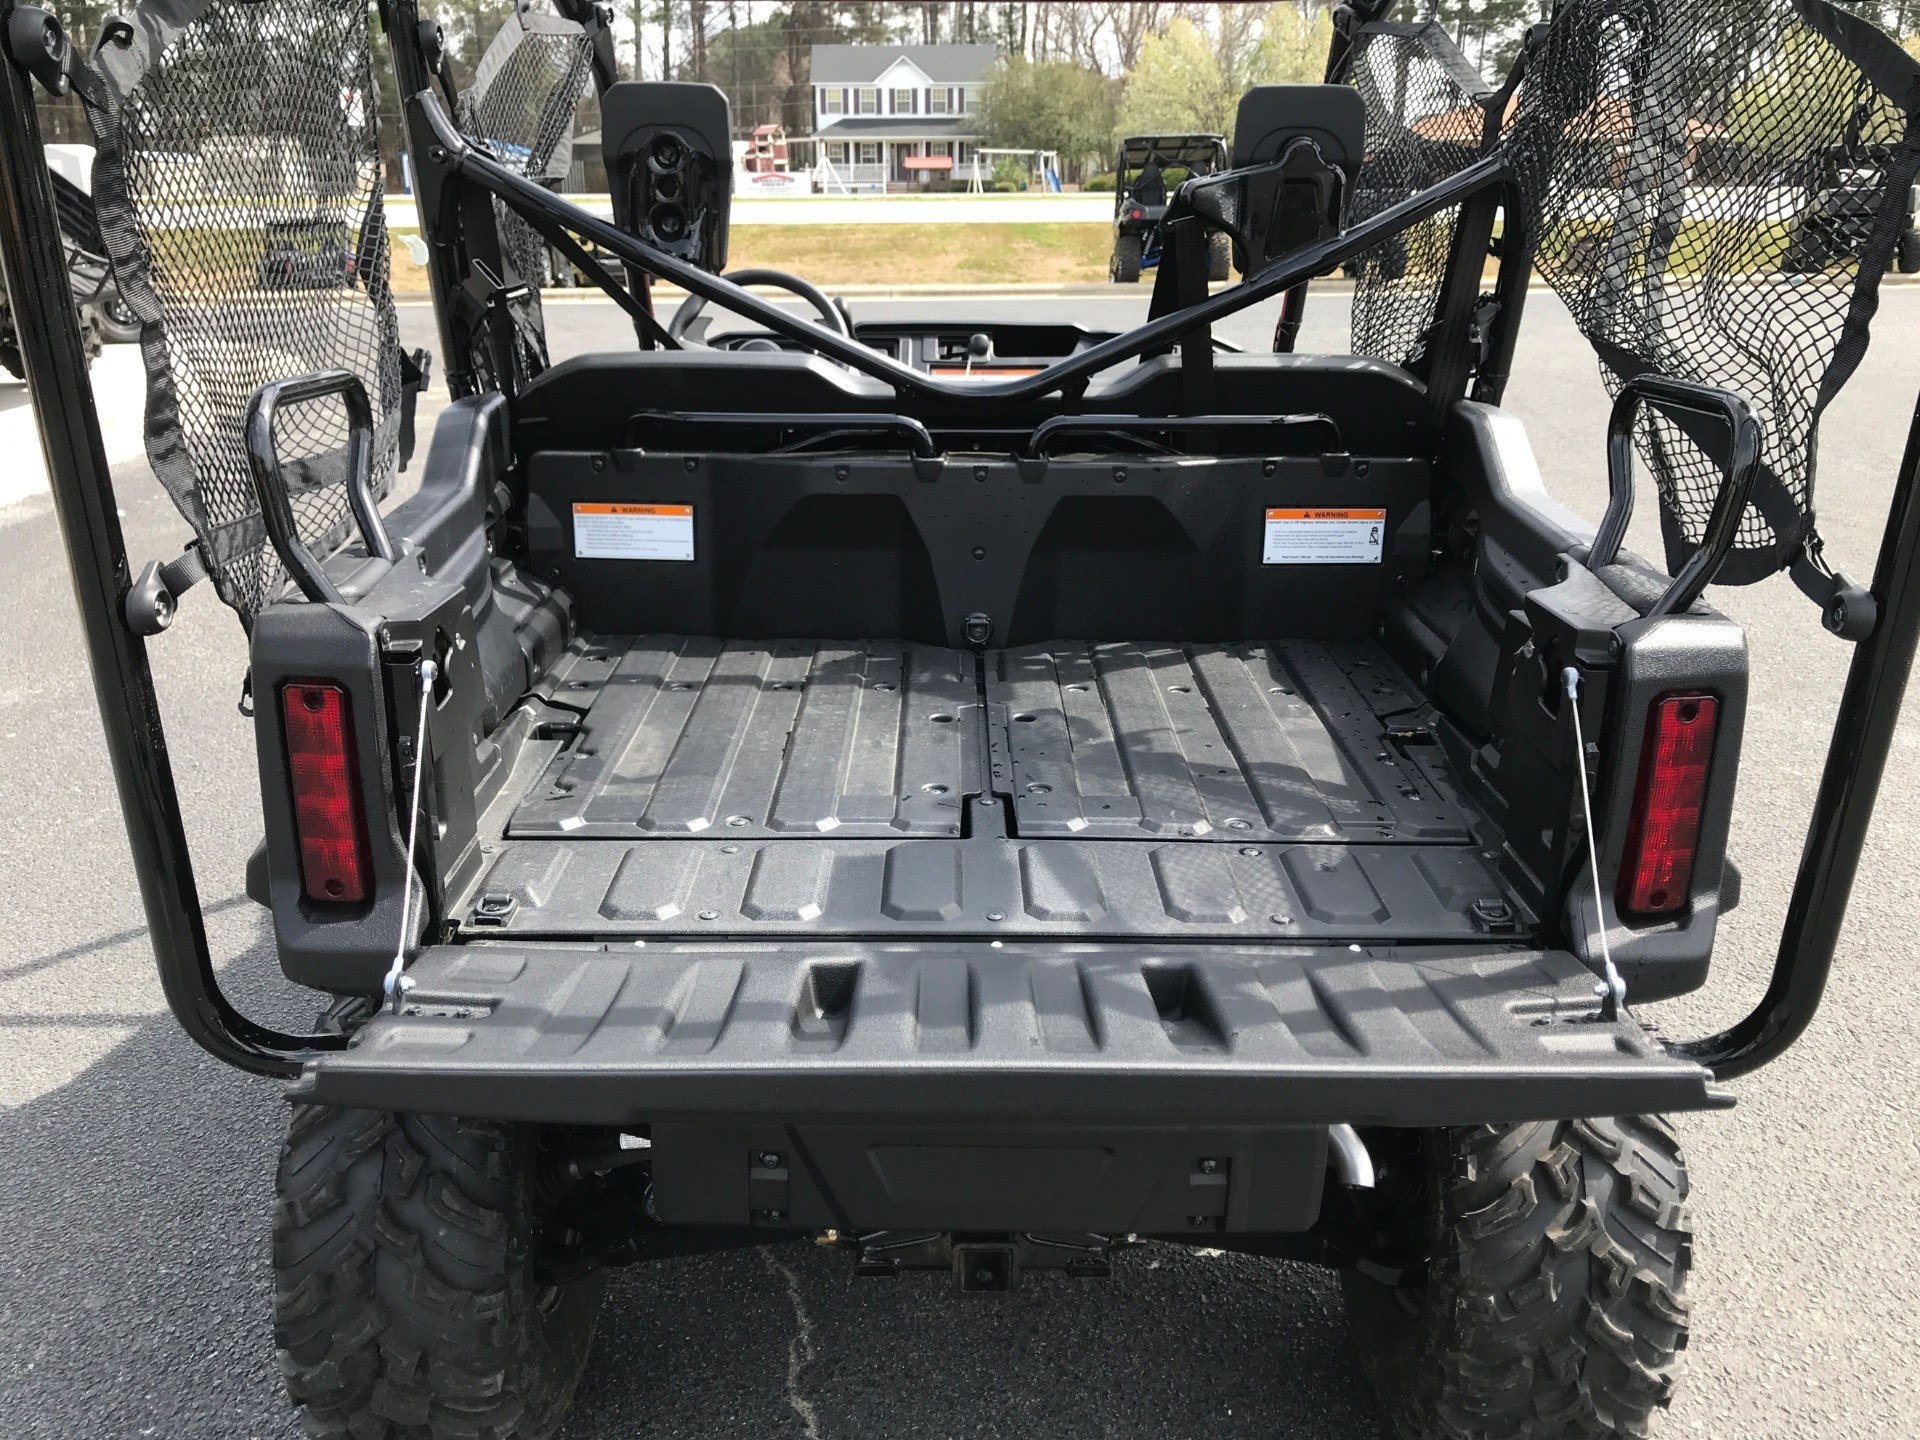 2020 Honda Pioneer 1000-5 in Greenville, North Carolina - Photo 15